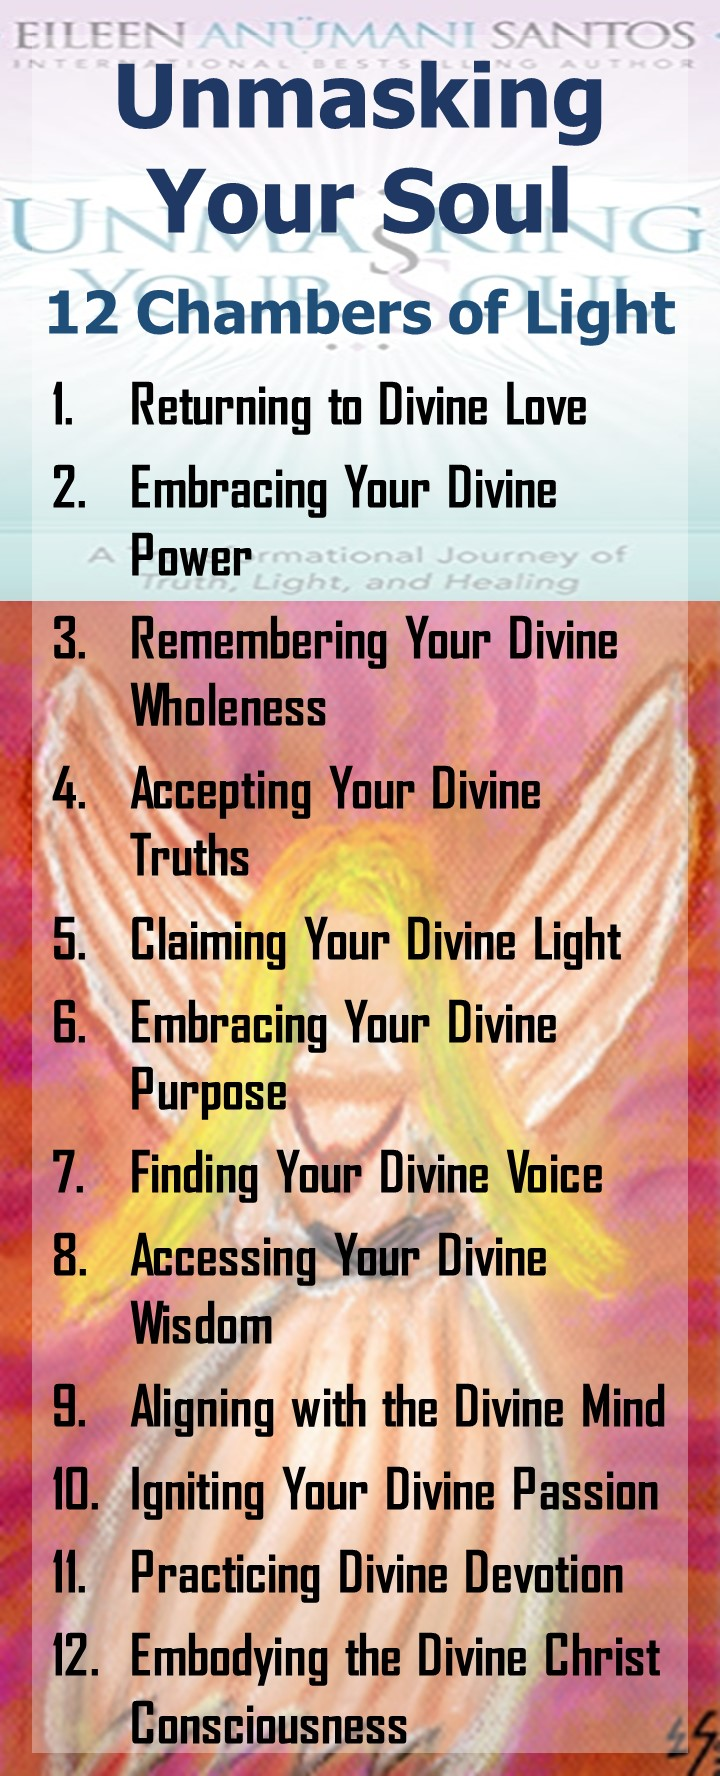 Unmasking Your Soul: The 12 Chambers of Light